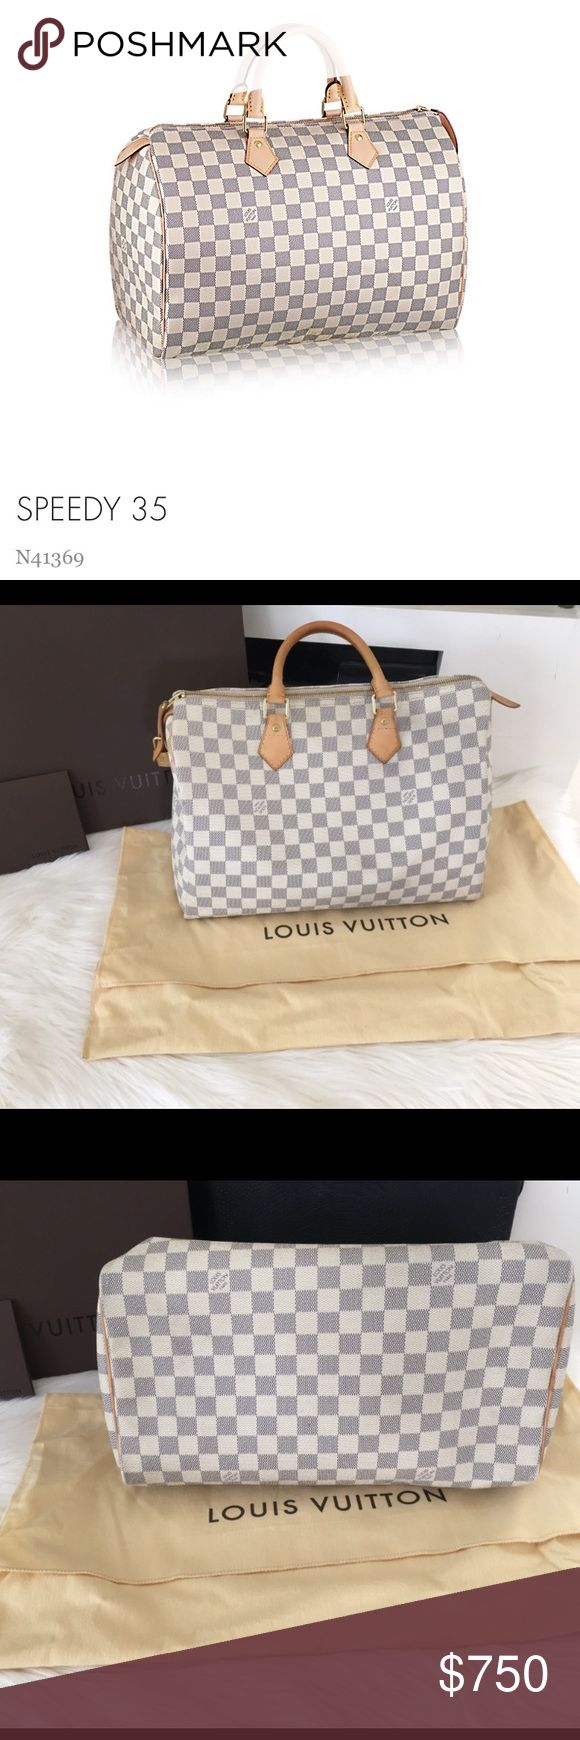 Louis Vuitton Speedy 35 Damier Canvas Lightly used . Excellent used condition. No trades . Comes with box and dust bag . Reasonable offers welcome. Retail price 990$. Please see measurements above. Louis Vuitton Other